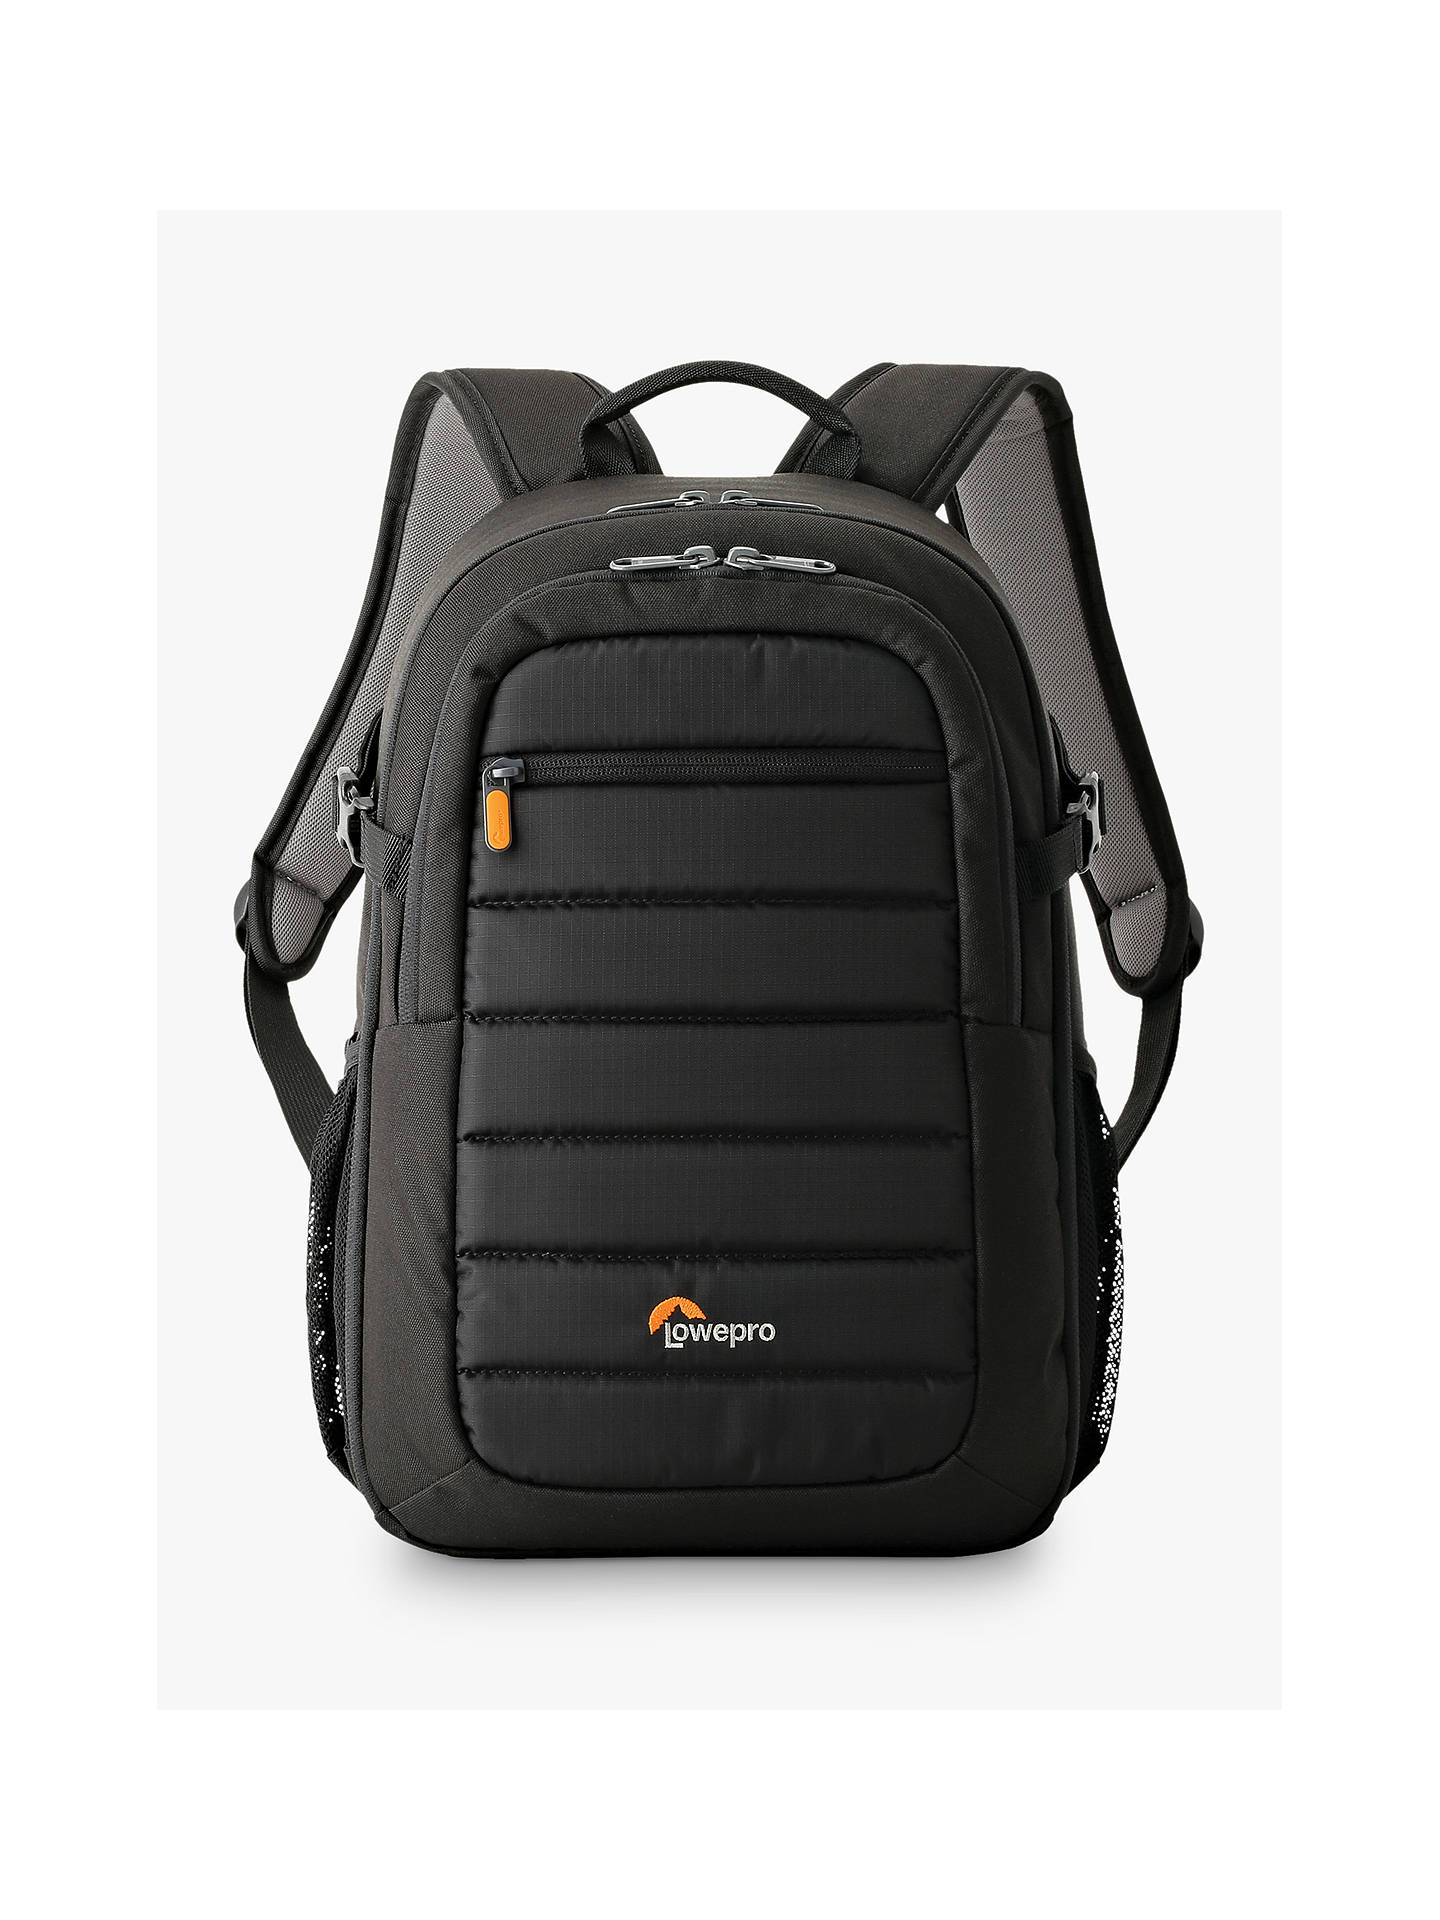 Lowepro Tahoe Bp 150 Camera Backpack Black